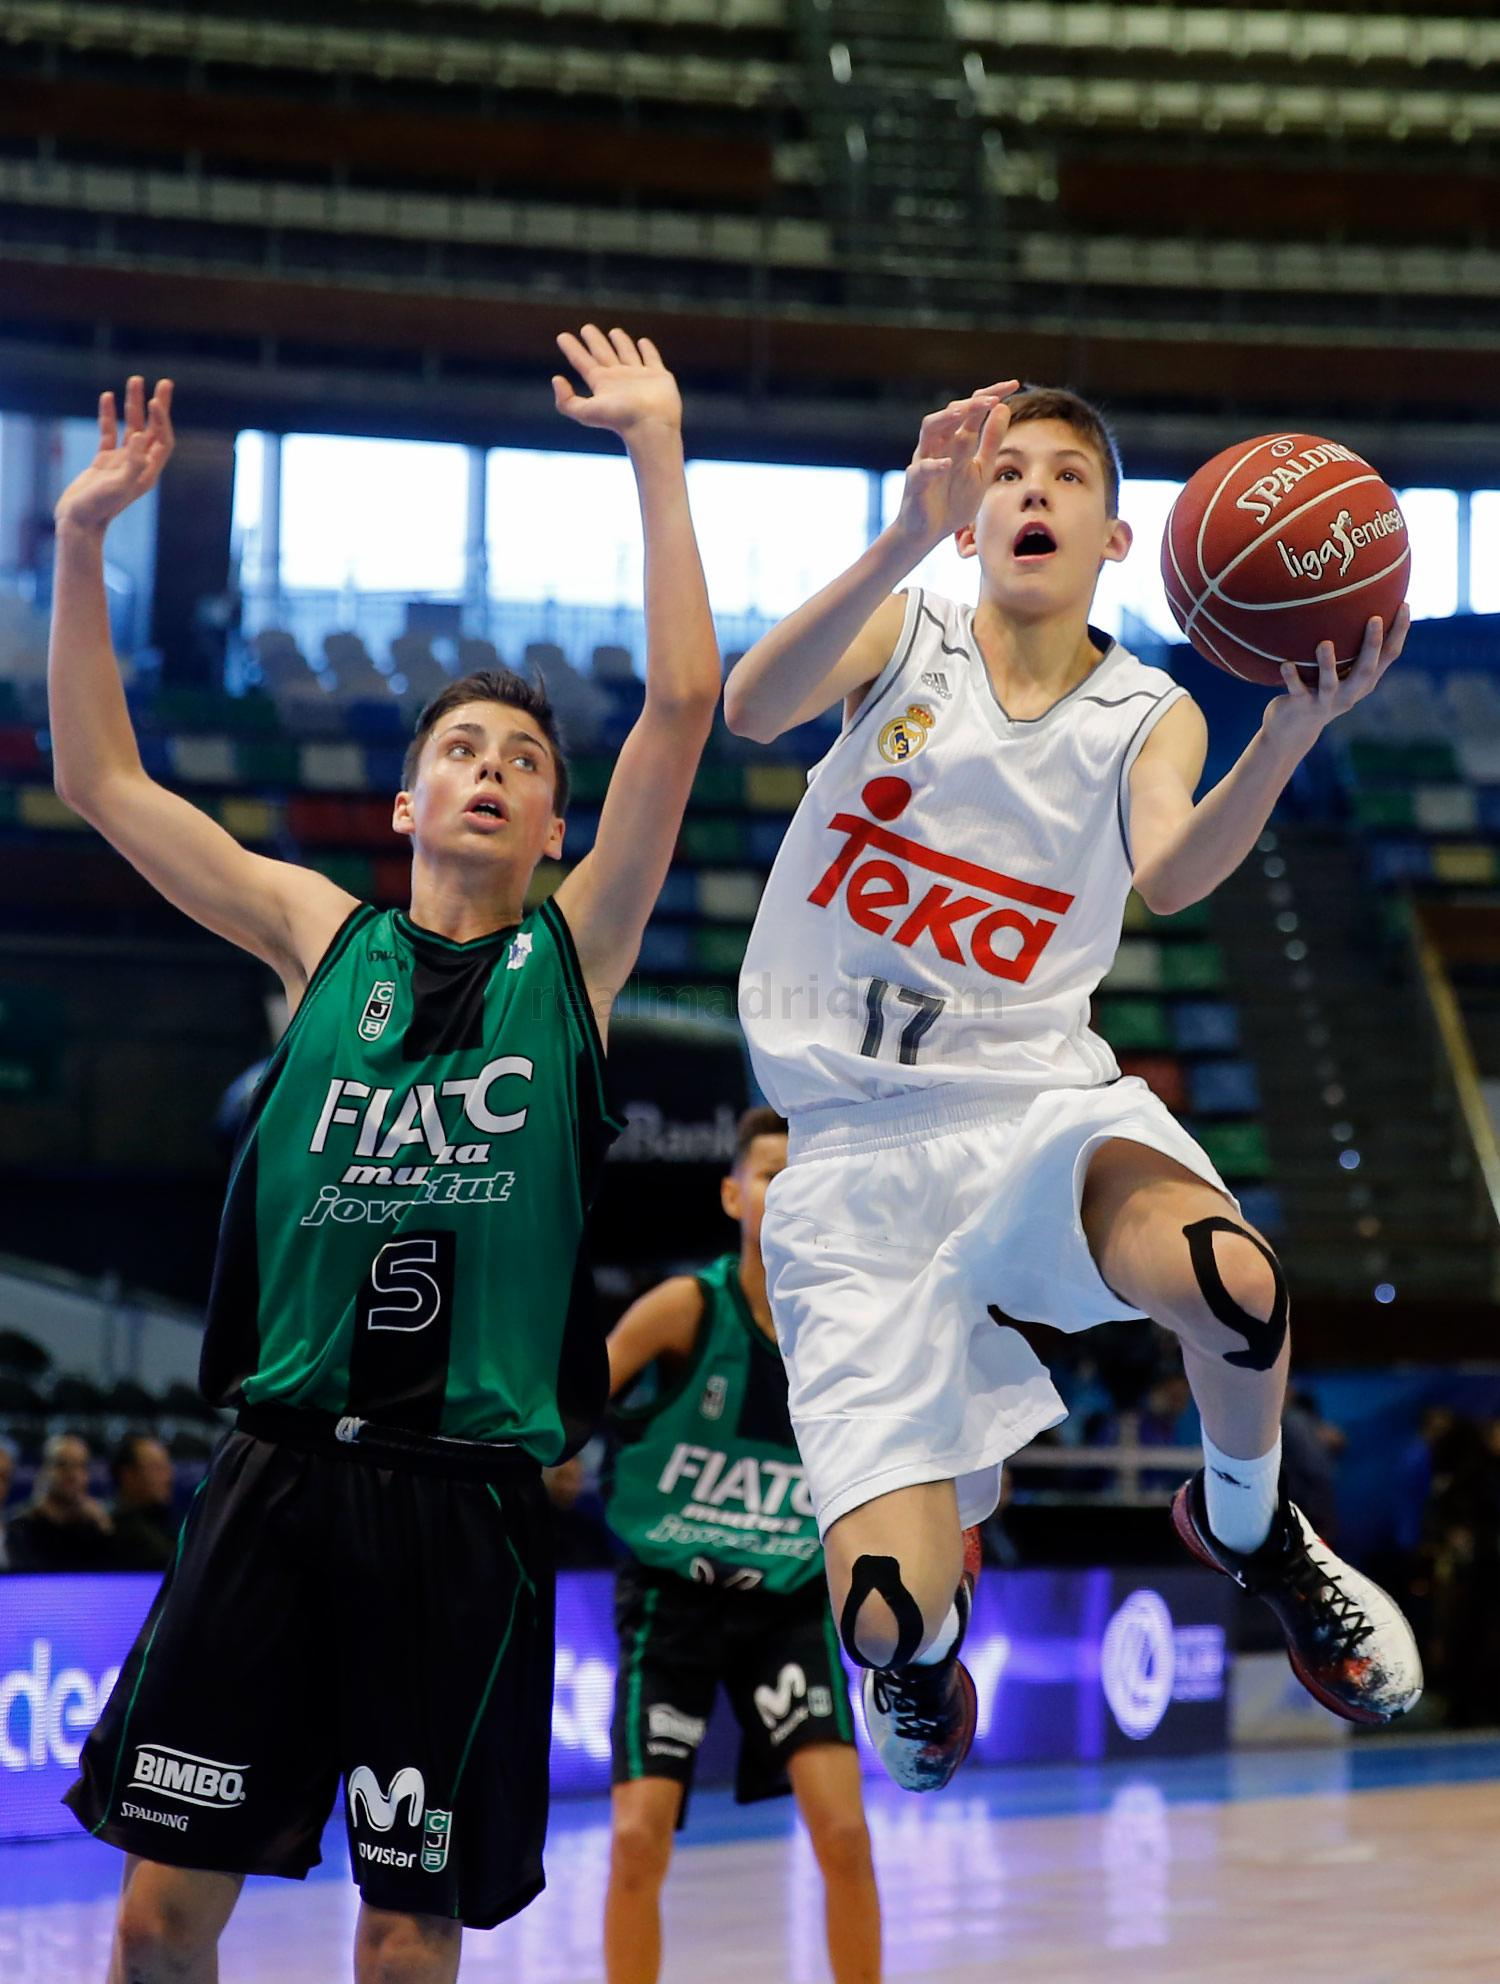 Real Madrid - Real Madrid - FIATC Joventut - 21-02-2016